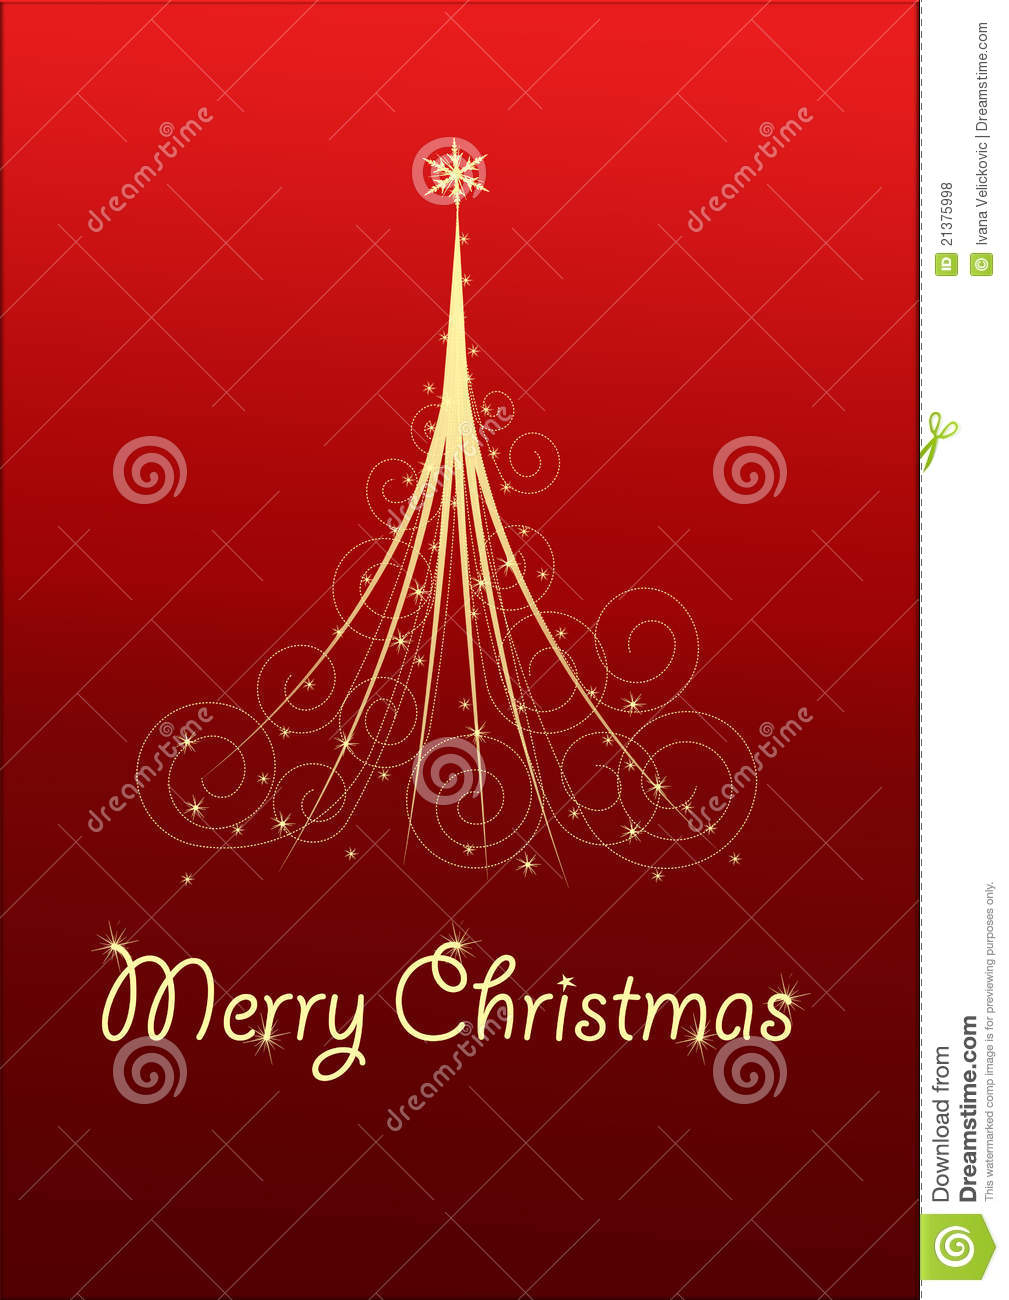 royalty free stock photo download christmas card with christmas tree - Christmas Card Tree